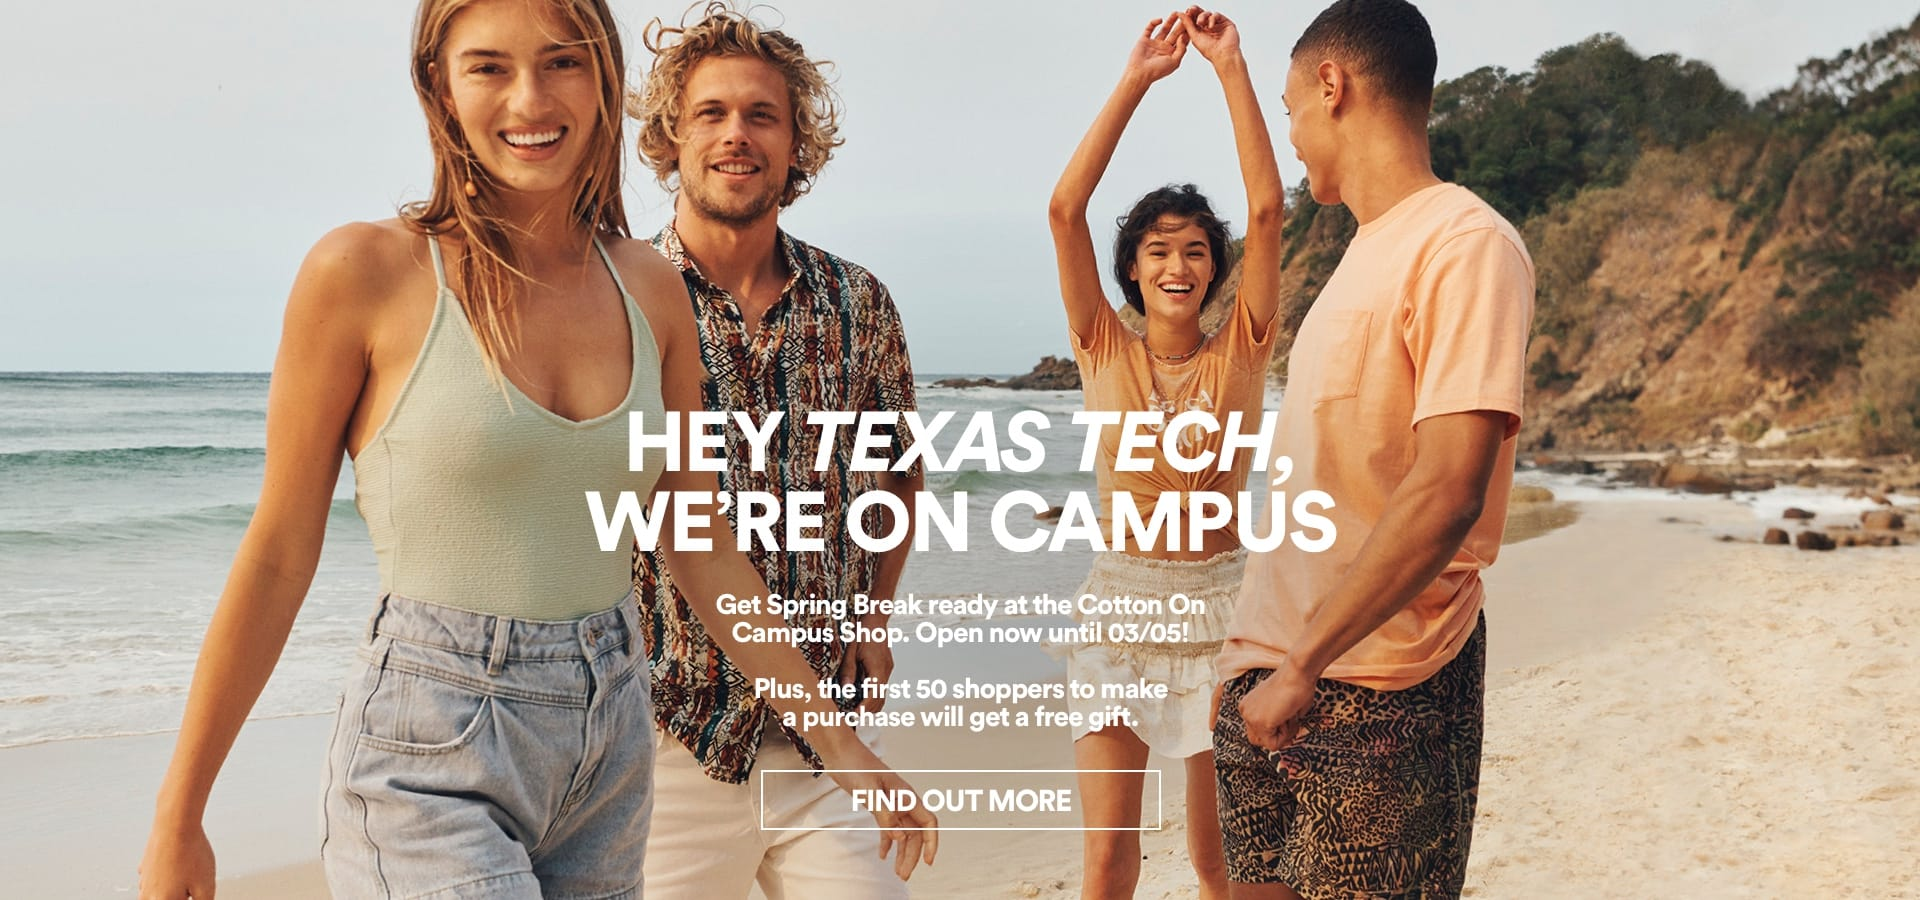 Texas Tech, We're On Campus. Find Out More